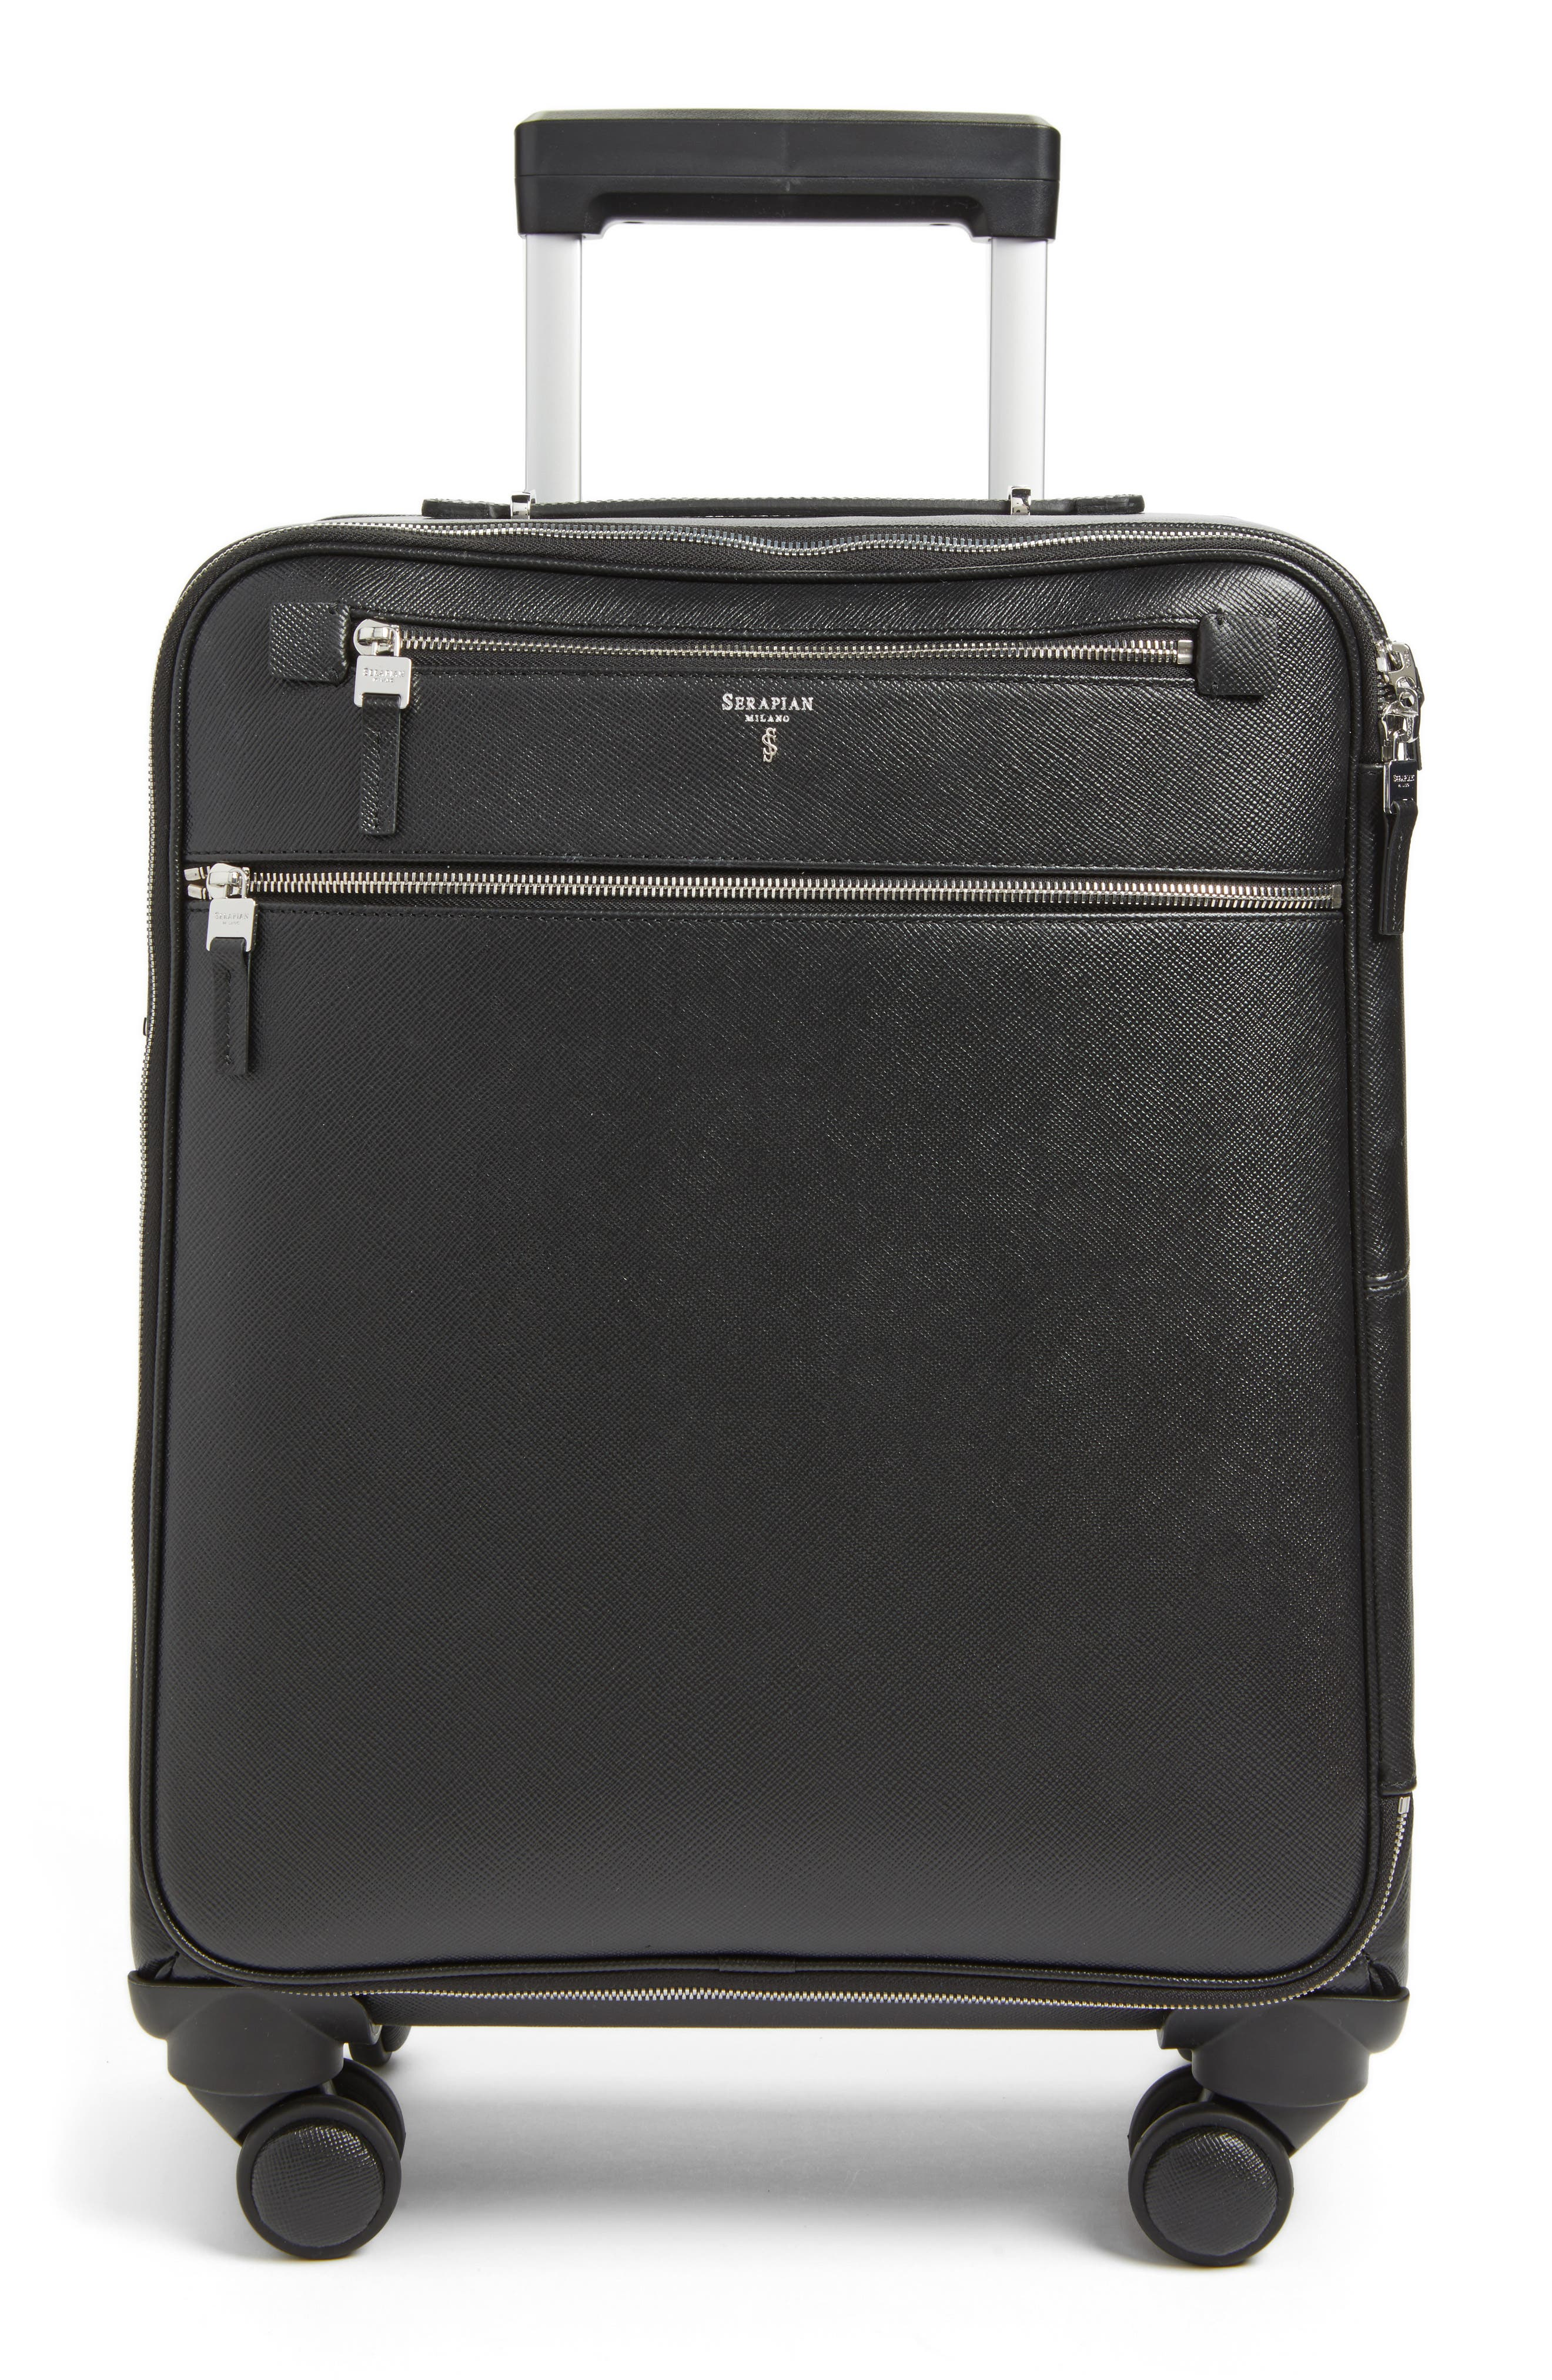 Trolley Spinner Wheeled Carry-On Suitcase,                             Main thumbnail 1, color,                             Black